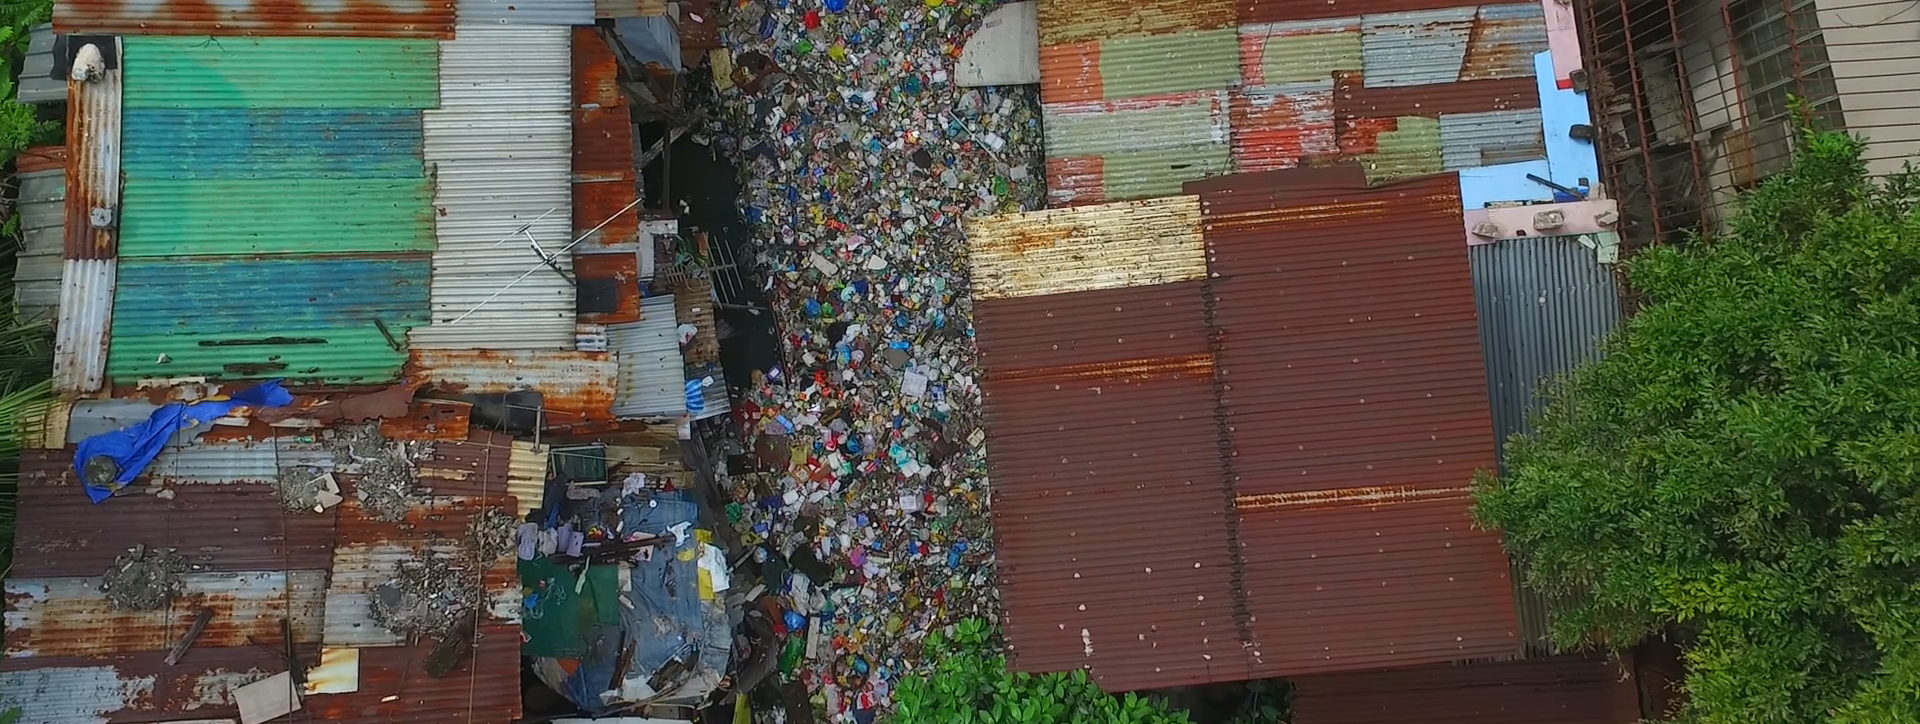 Estero de Magdalena carrying waste to the Pasig River, which flows out into the South China Sea.